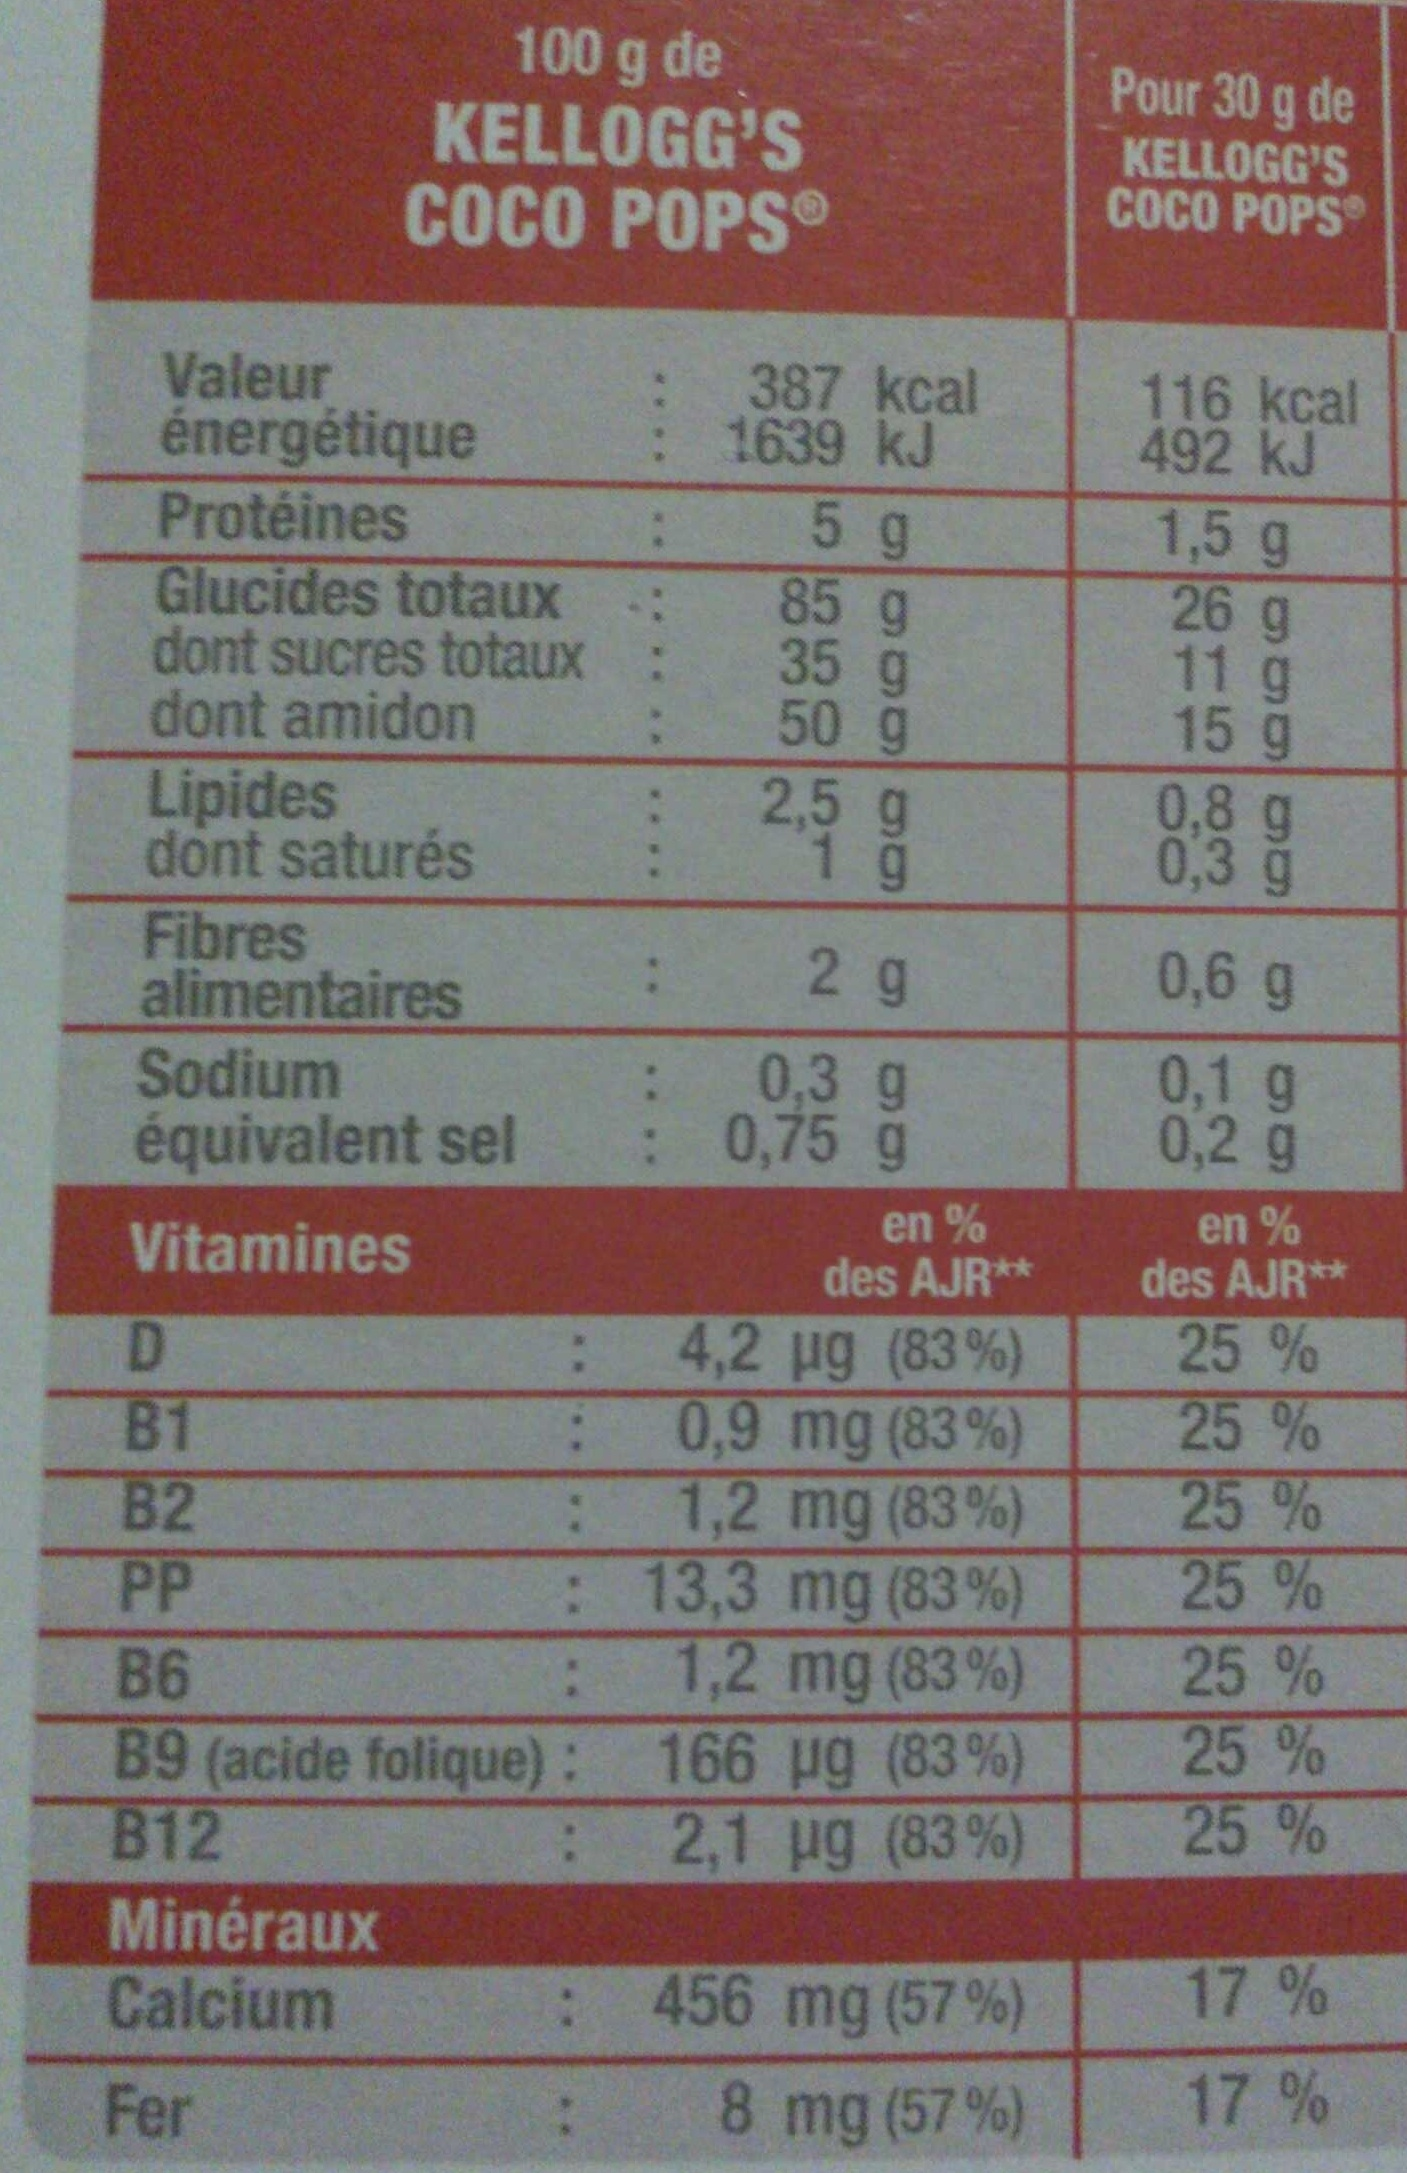 Coco pops - Nutrition facts